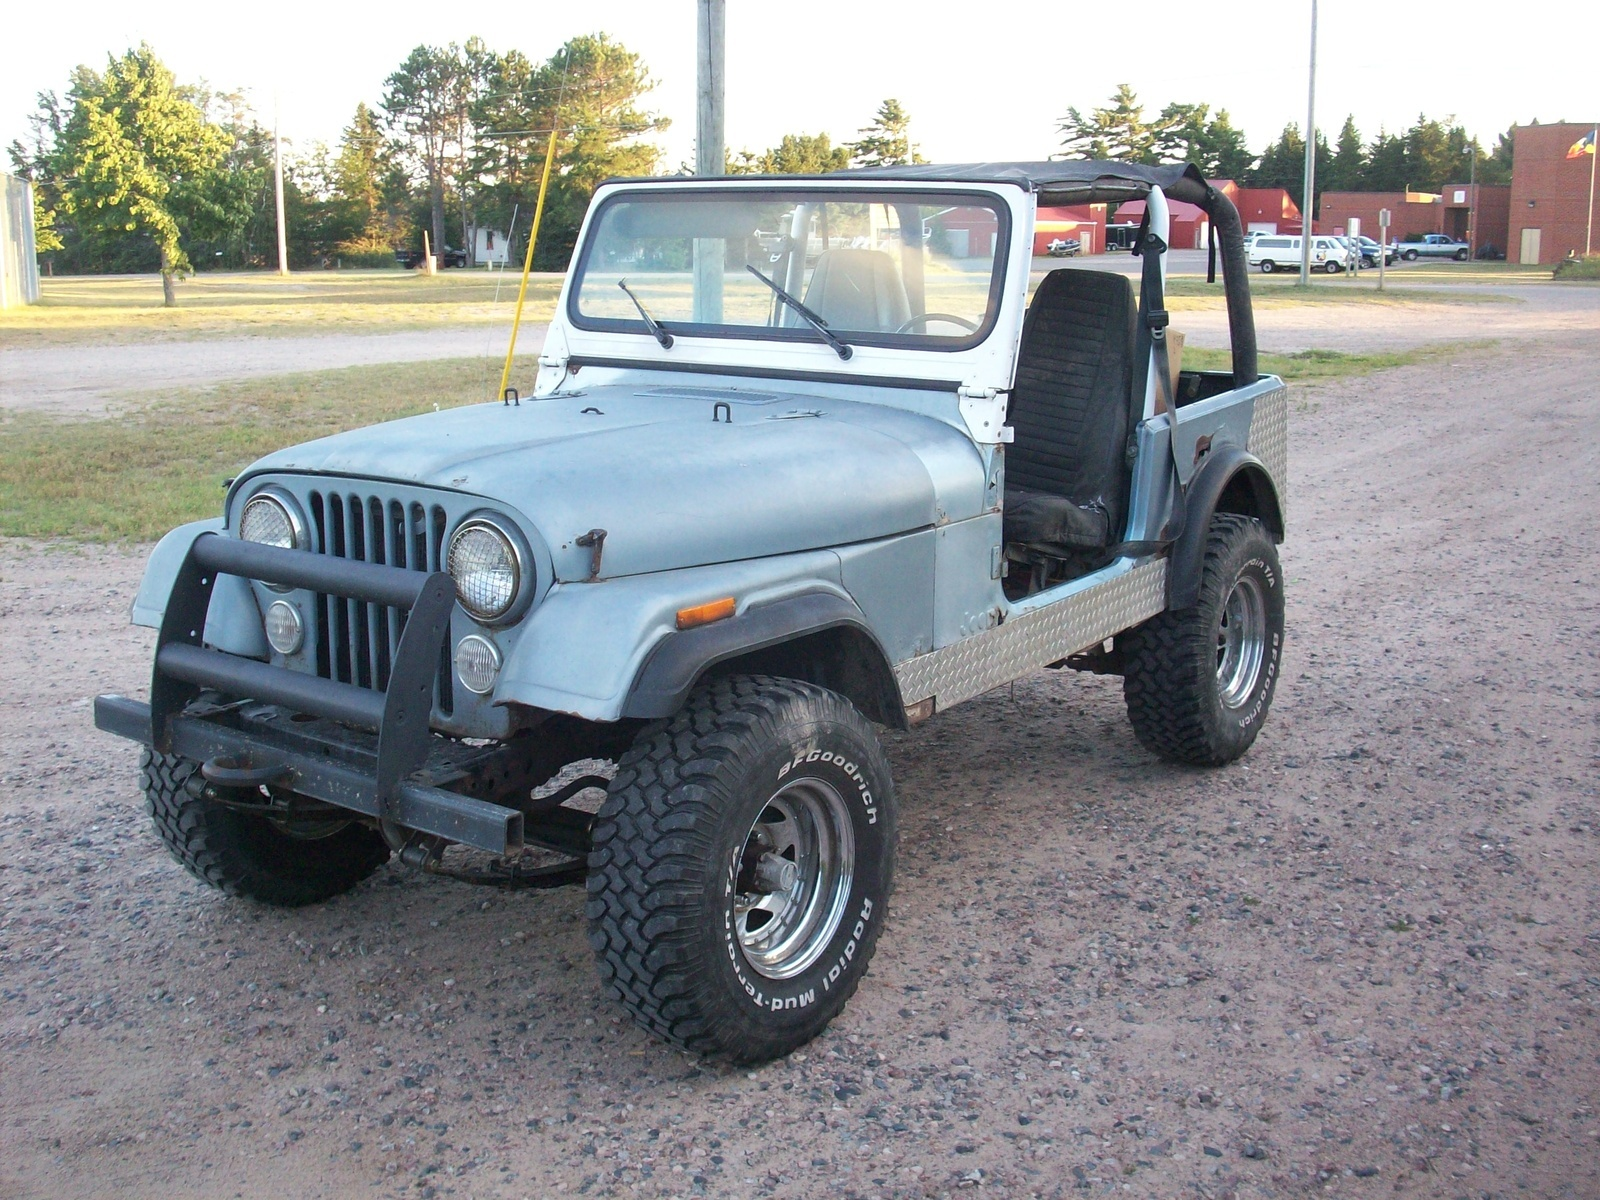 2008 Jeep Wrangler For Sale >> 1985 Jeep CJ-7 - Overview - CarGurus